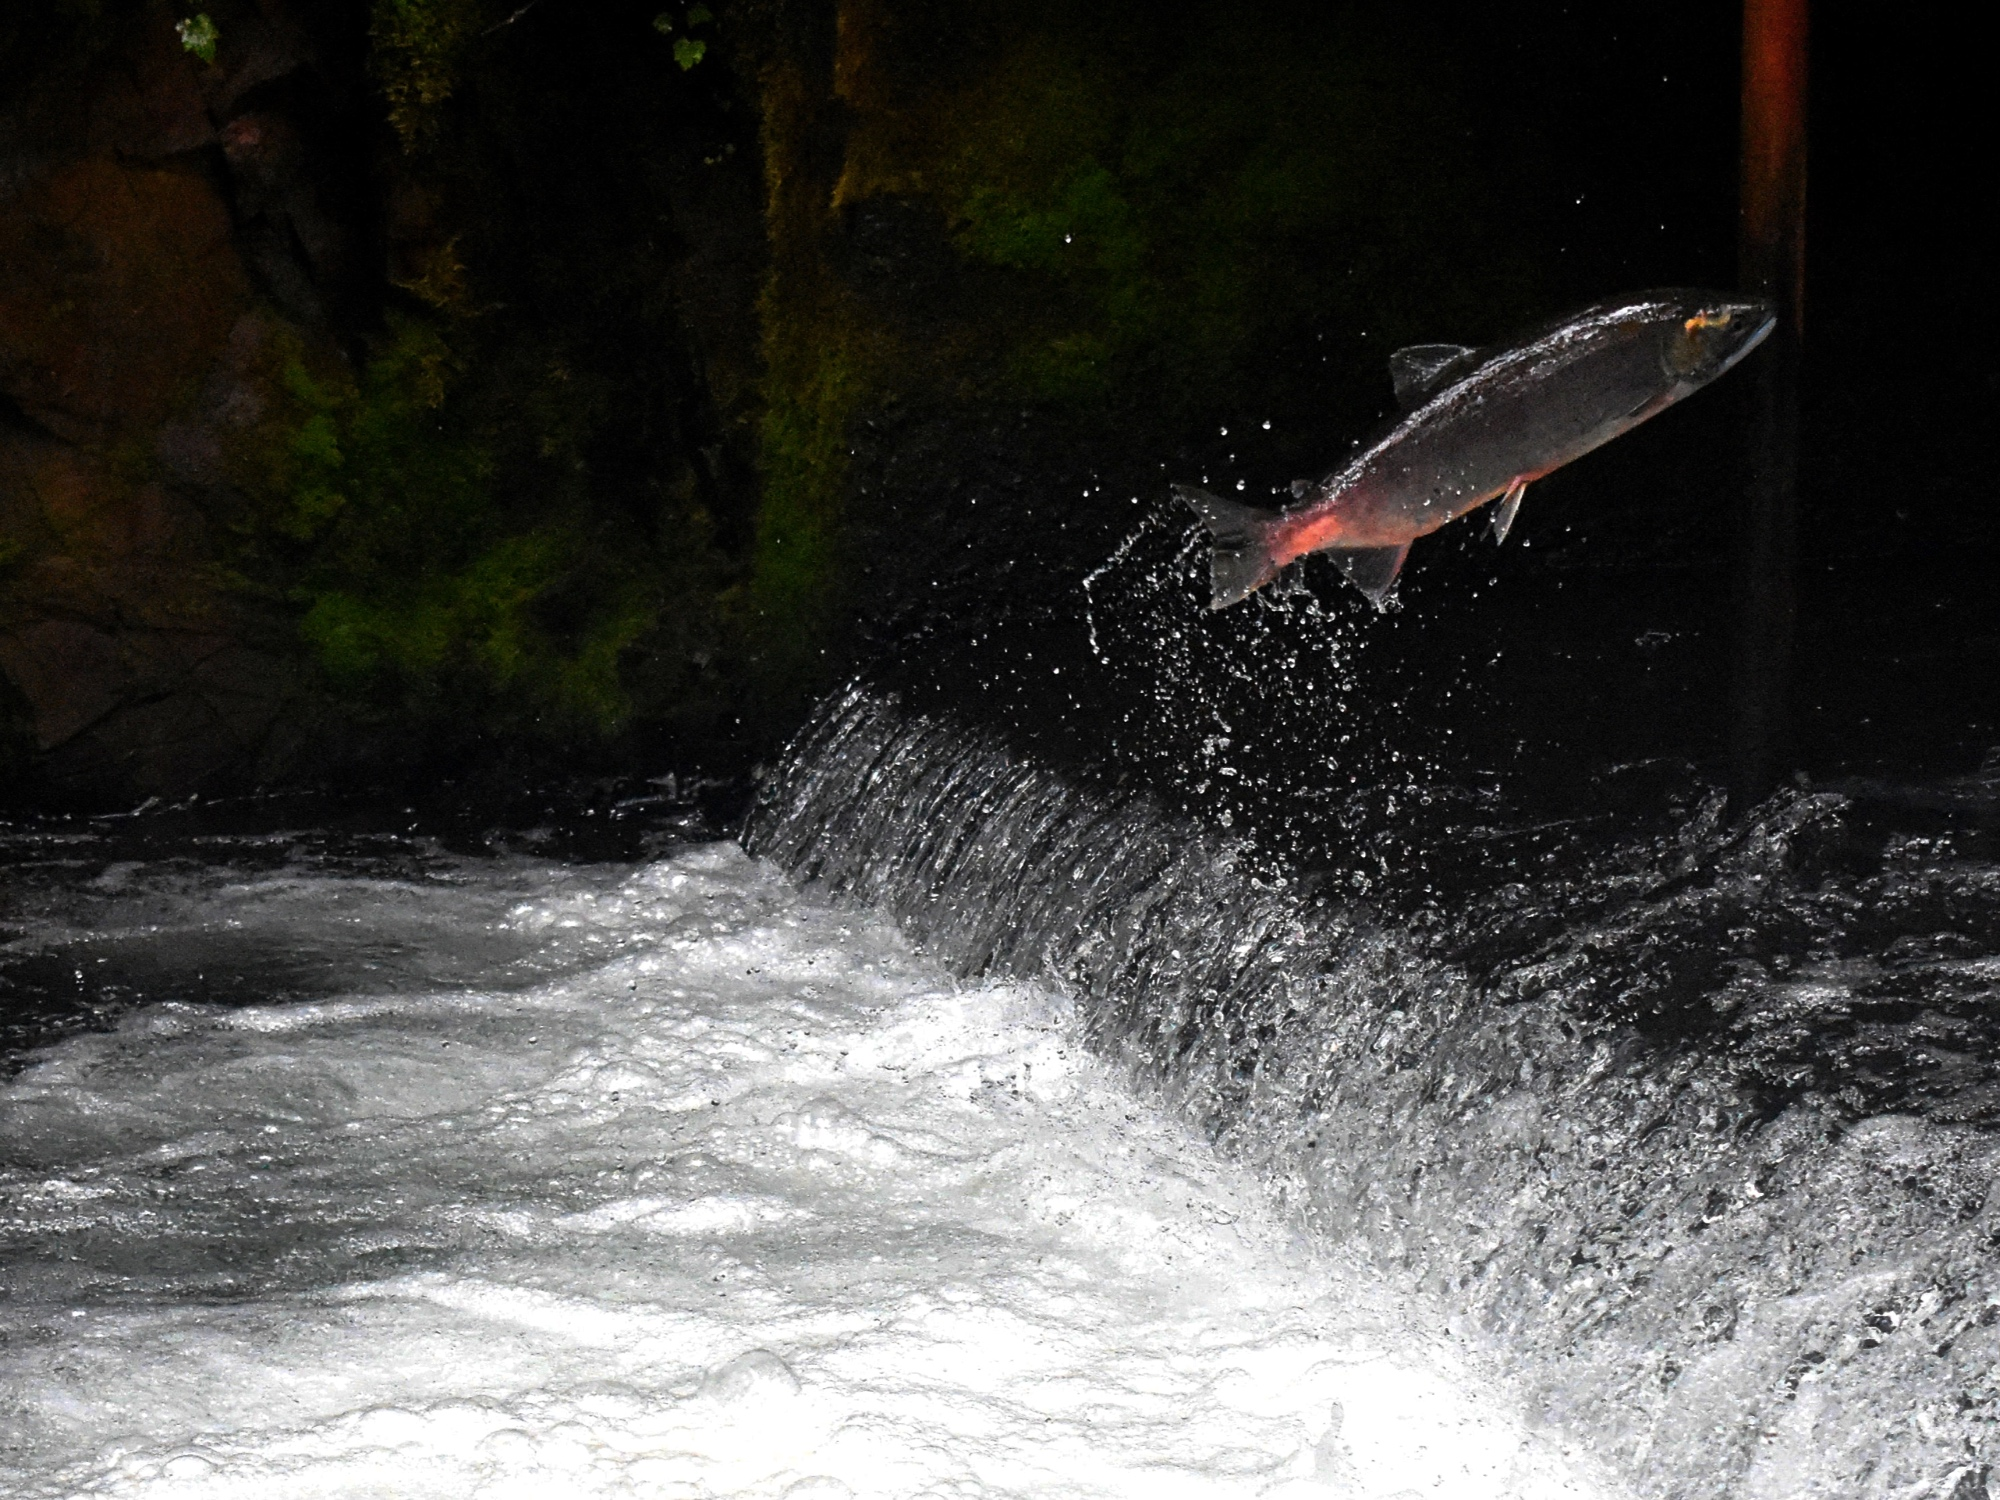 YuYue literally means a fish is trying to jump over a barrier. Image credit: Drew Farwell/Unspalsh